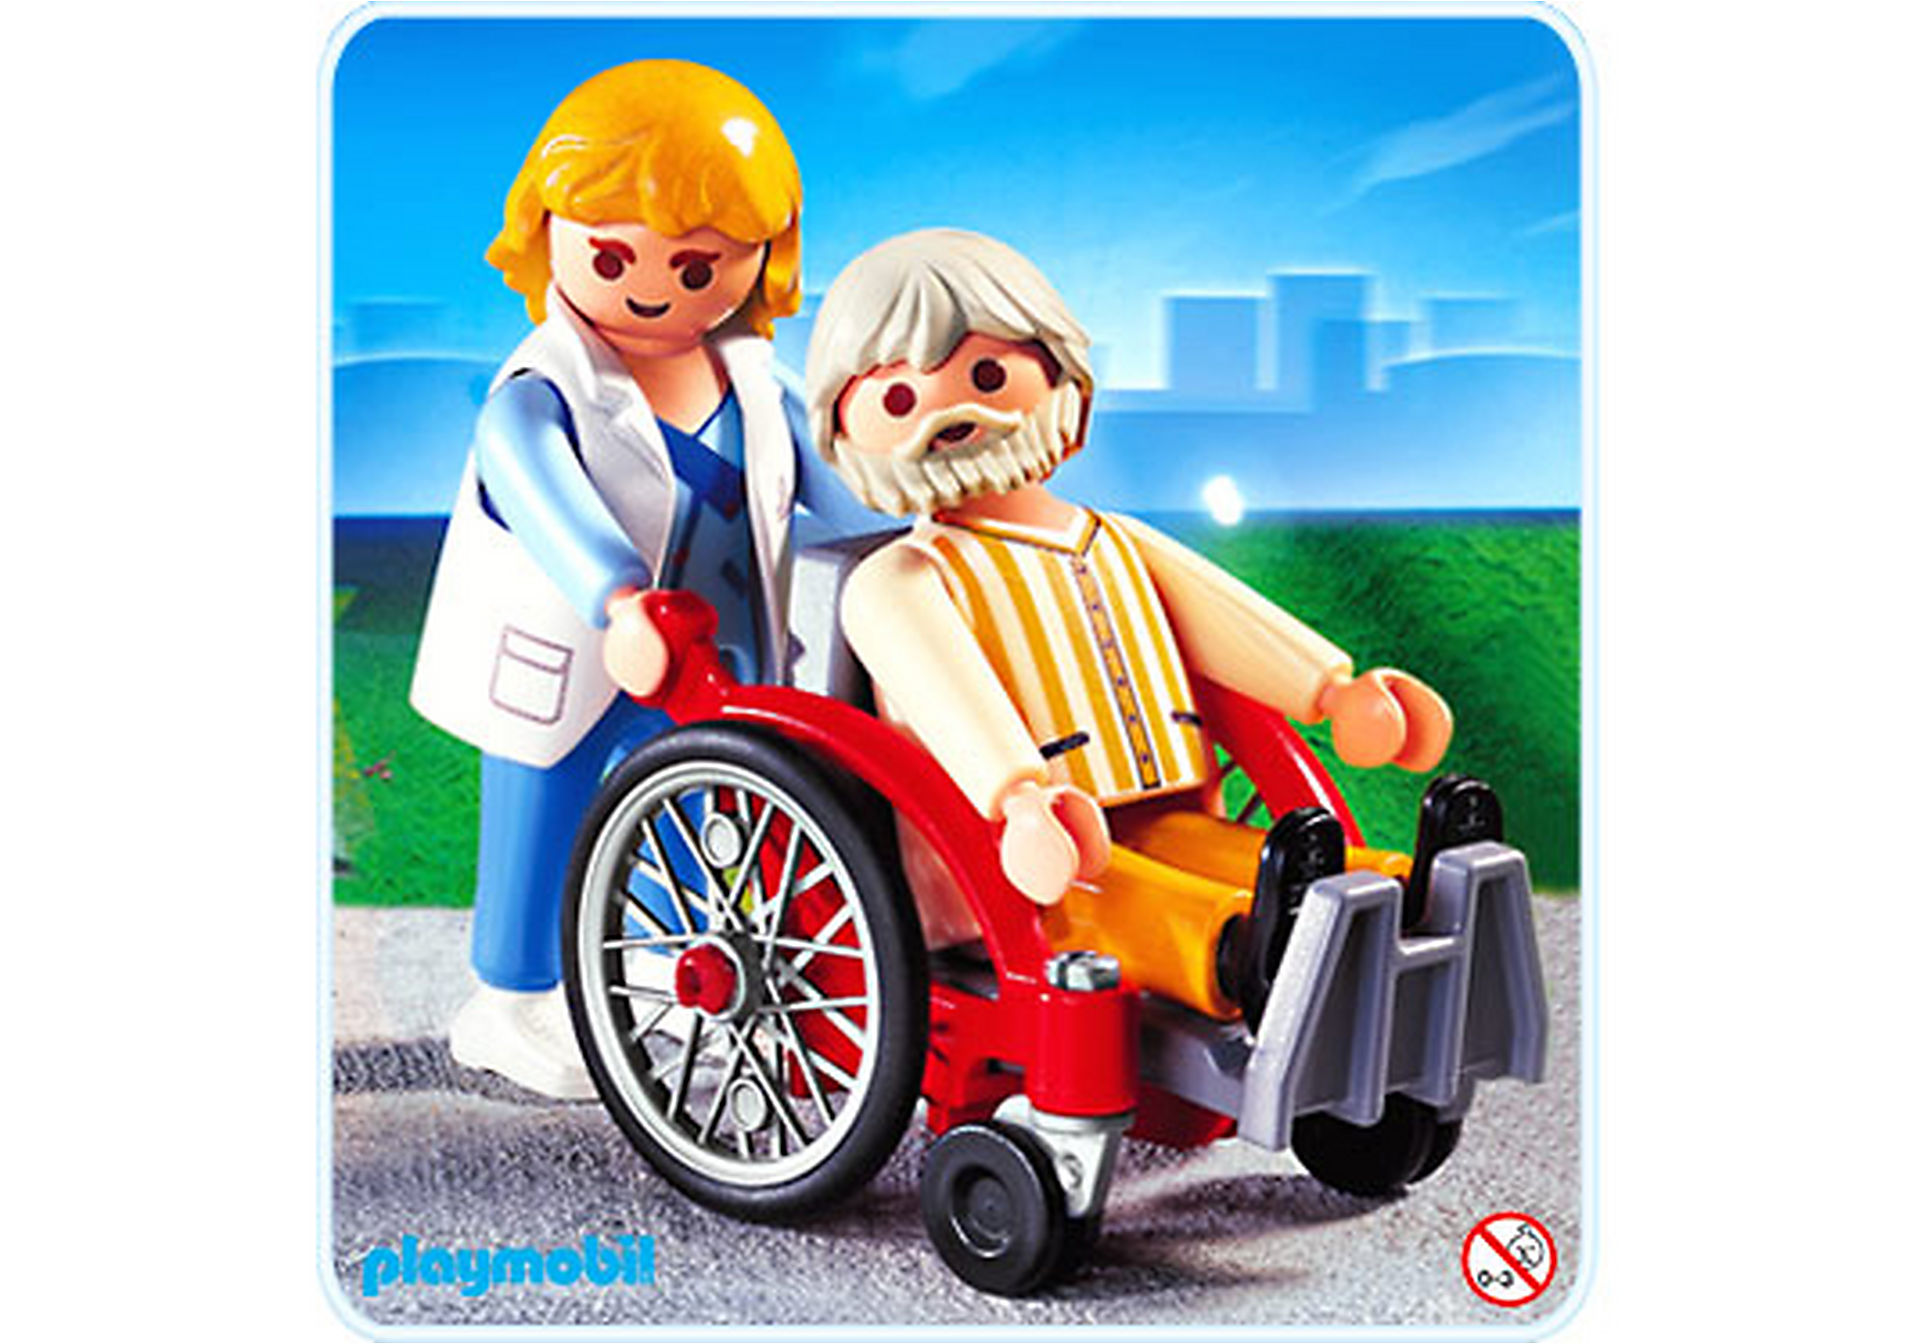 4226-A Doctoresse / malade / fauteuil roulant zoom image1